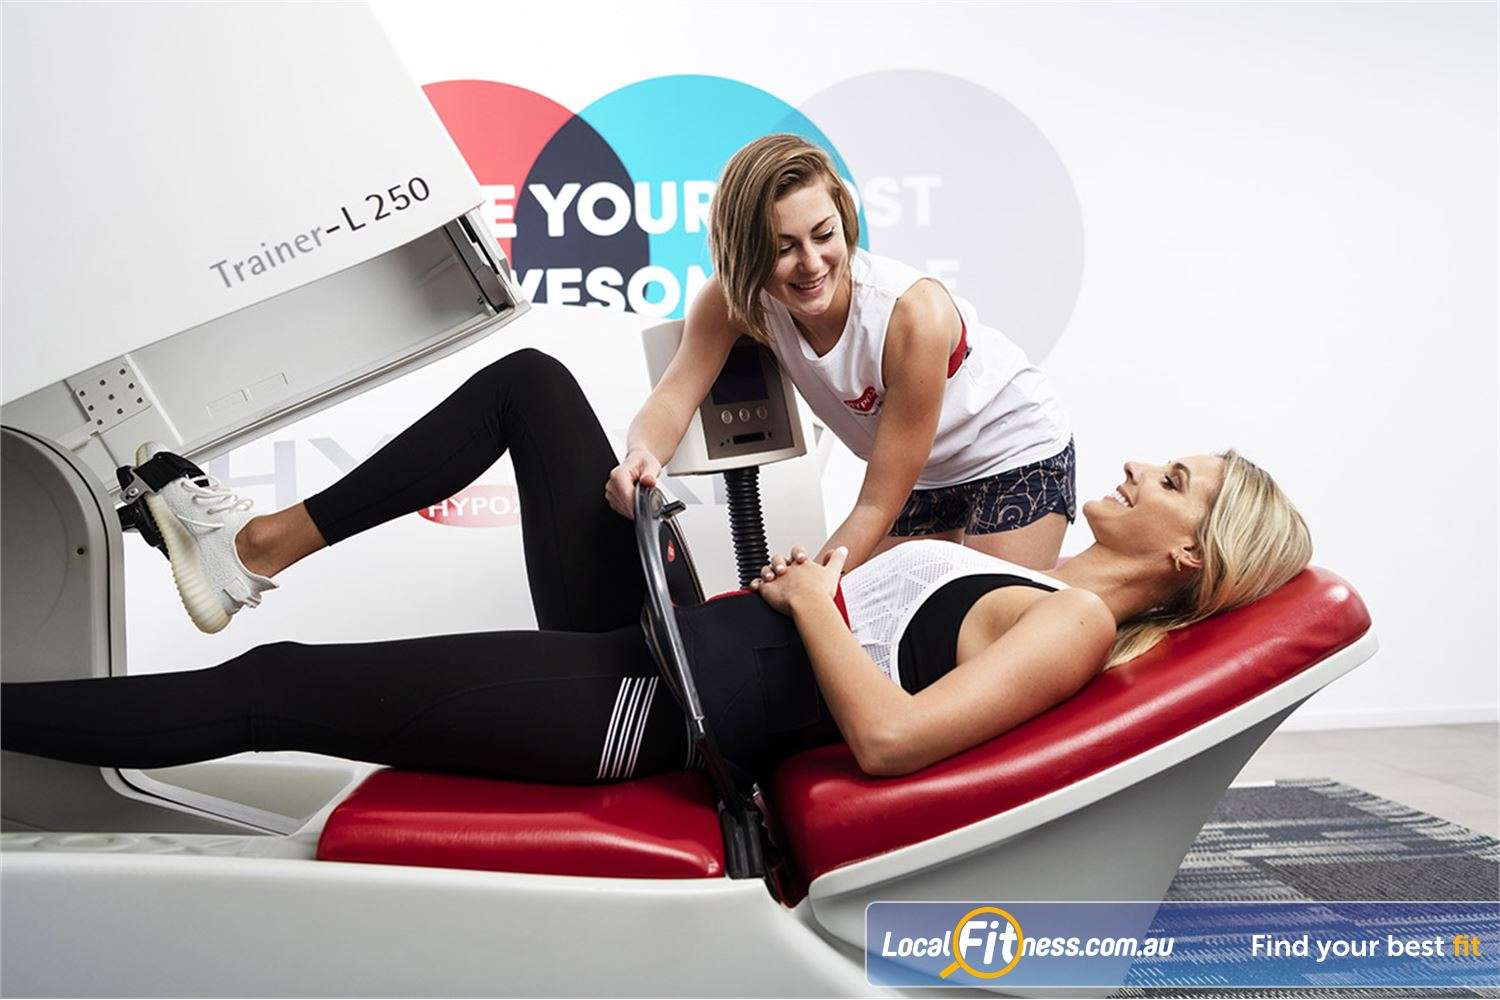 HYPOXI Weight Loss Near Moore Park For women HYPOXI is great for Waterloo cellulite reduction.